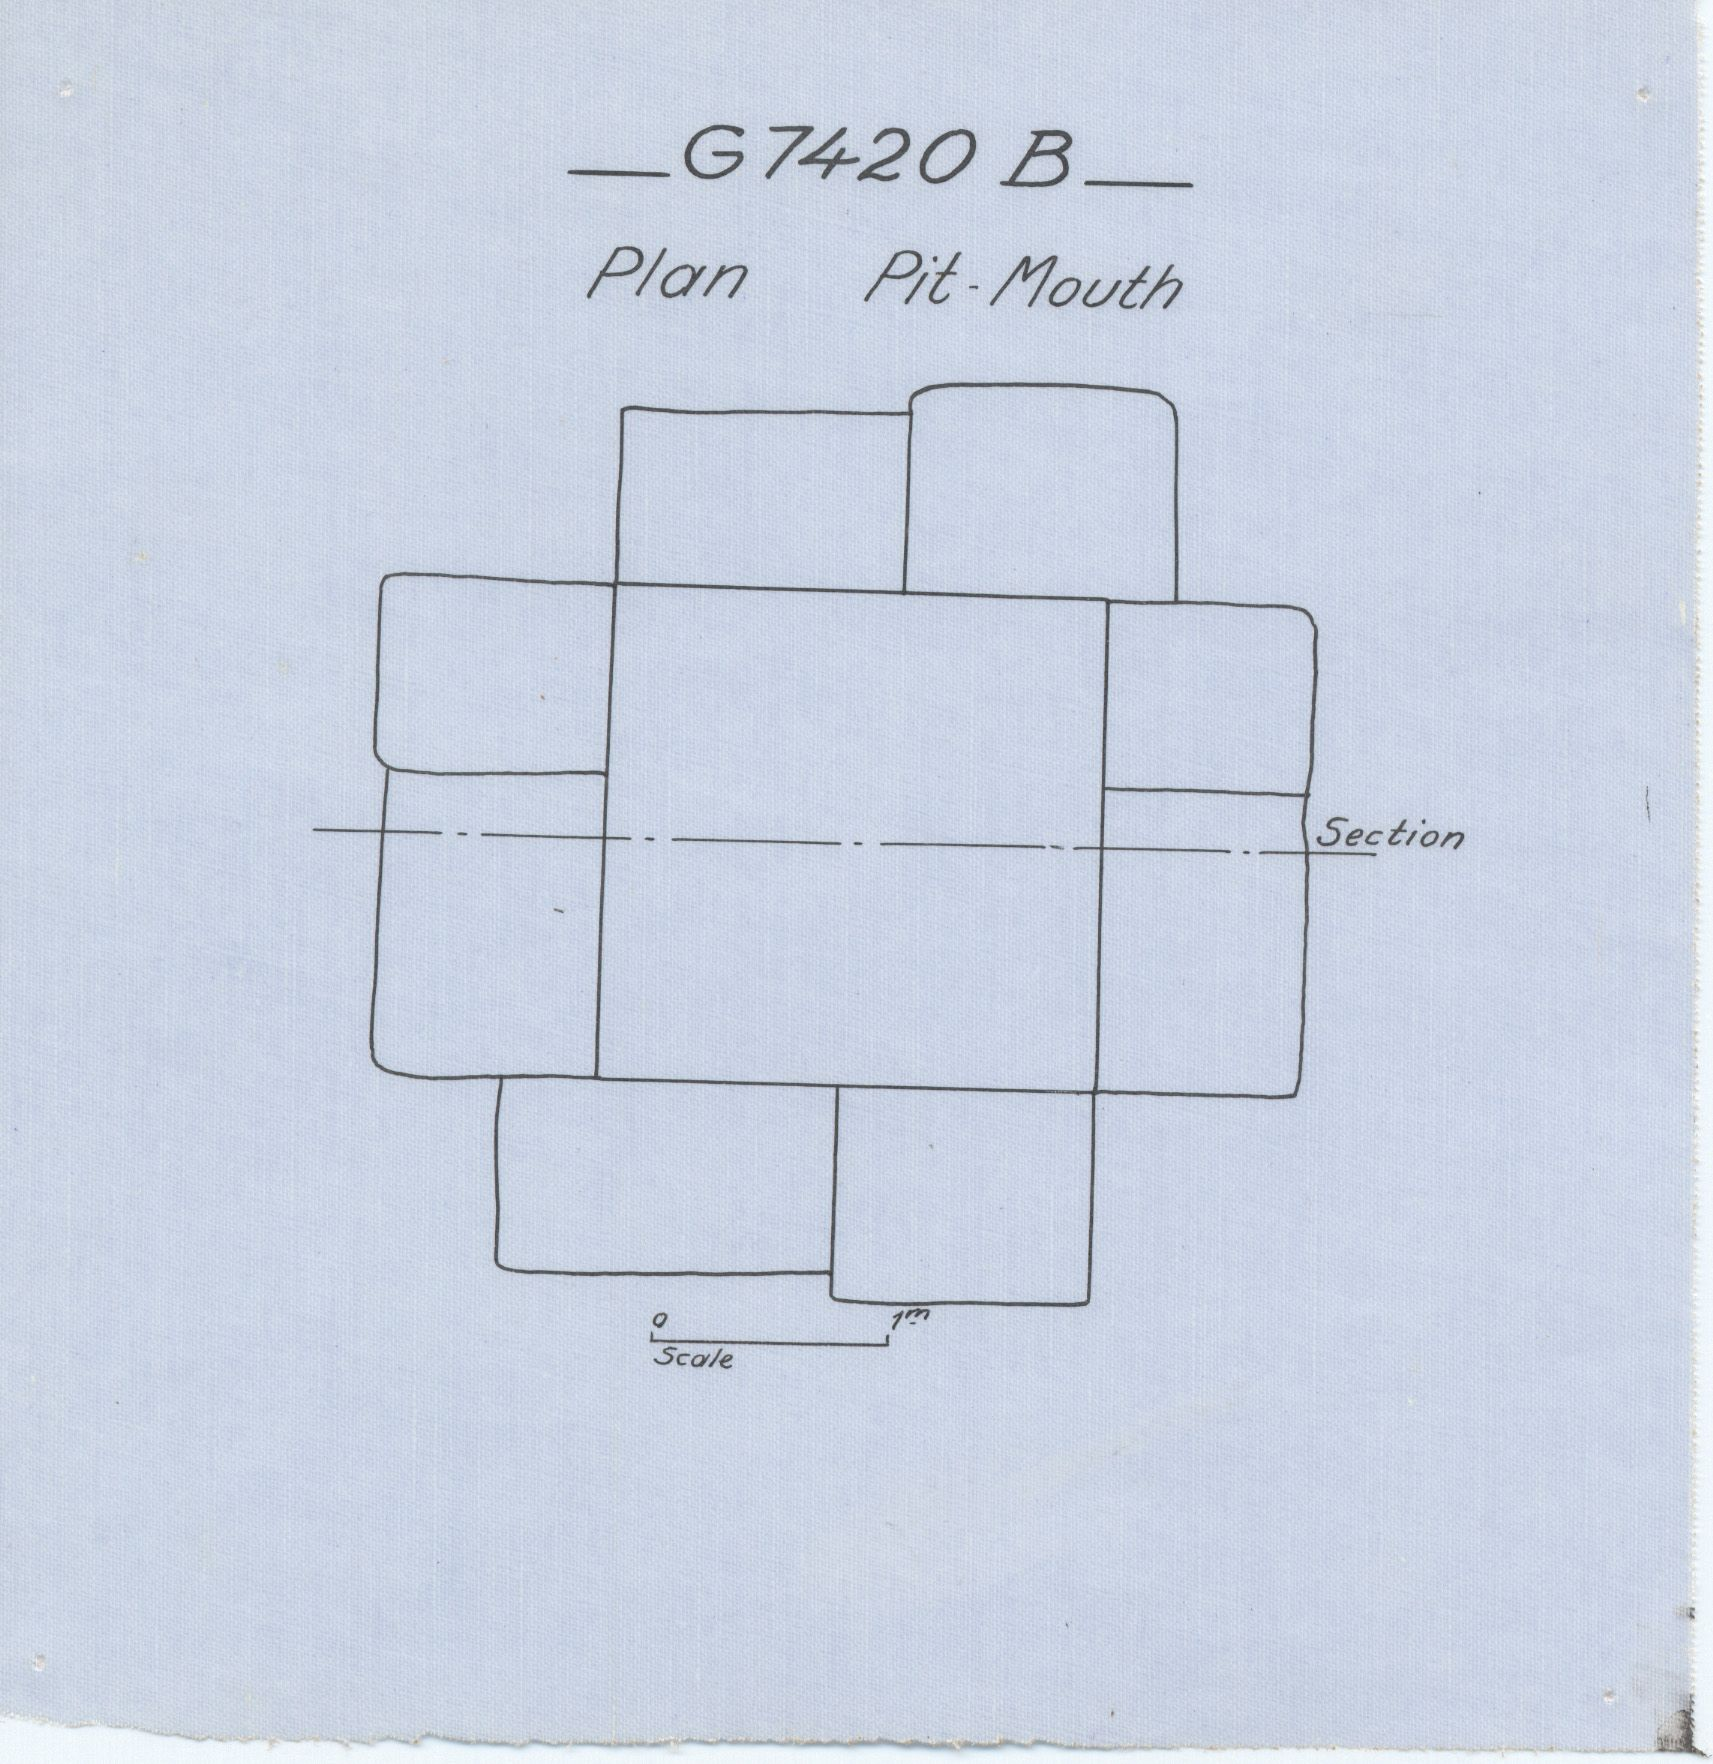 Maps and plans: G 7410-7420: G 7420, Shaft B